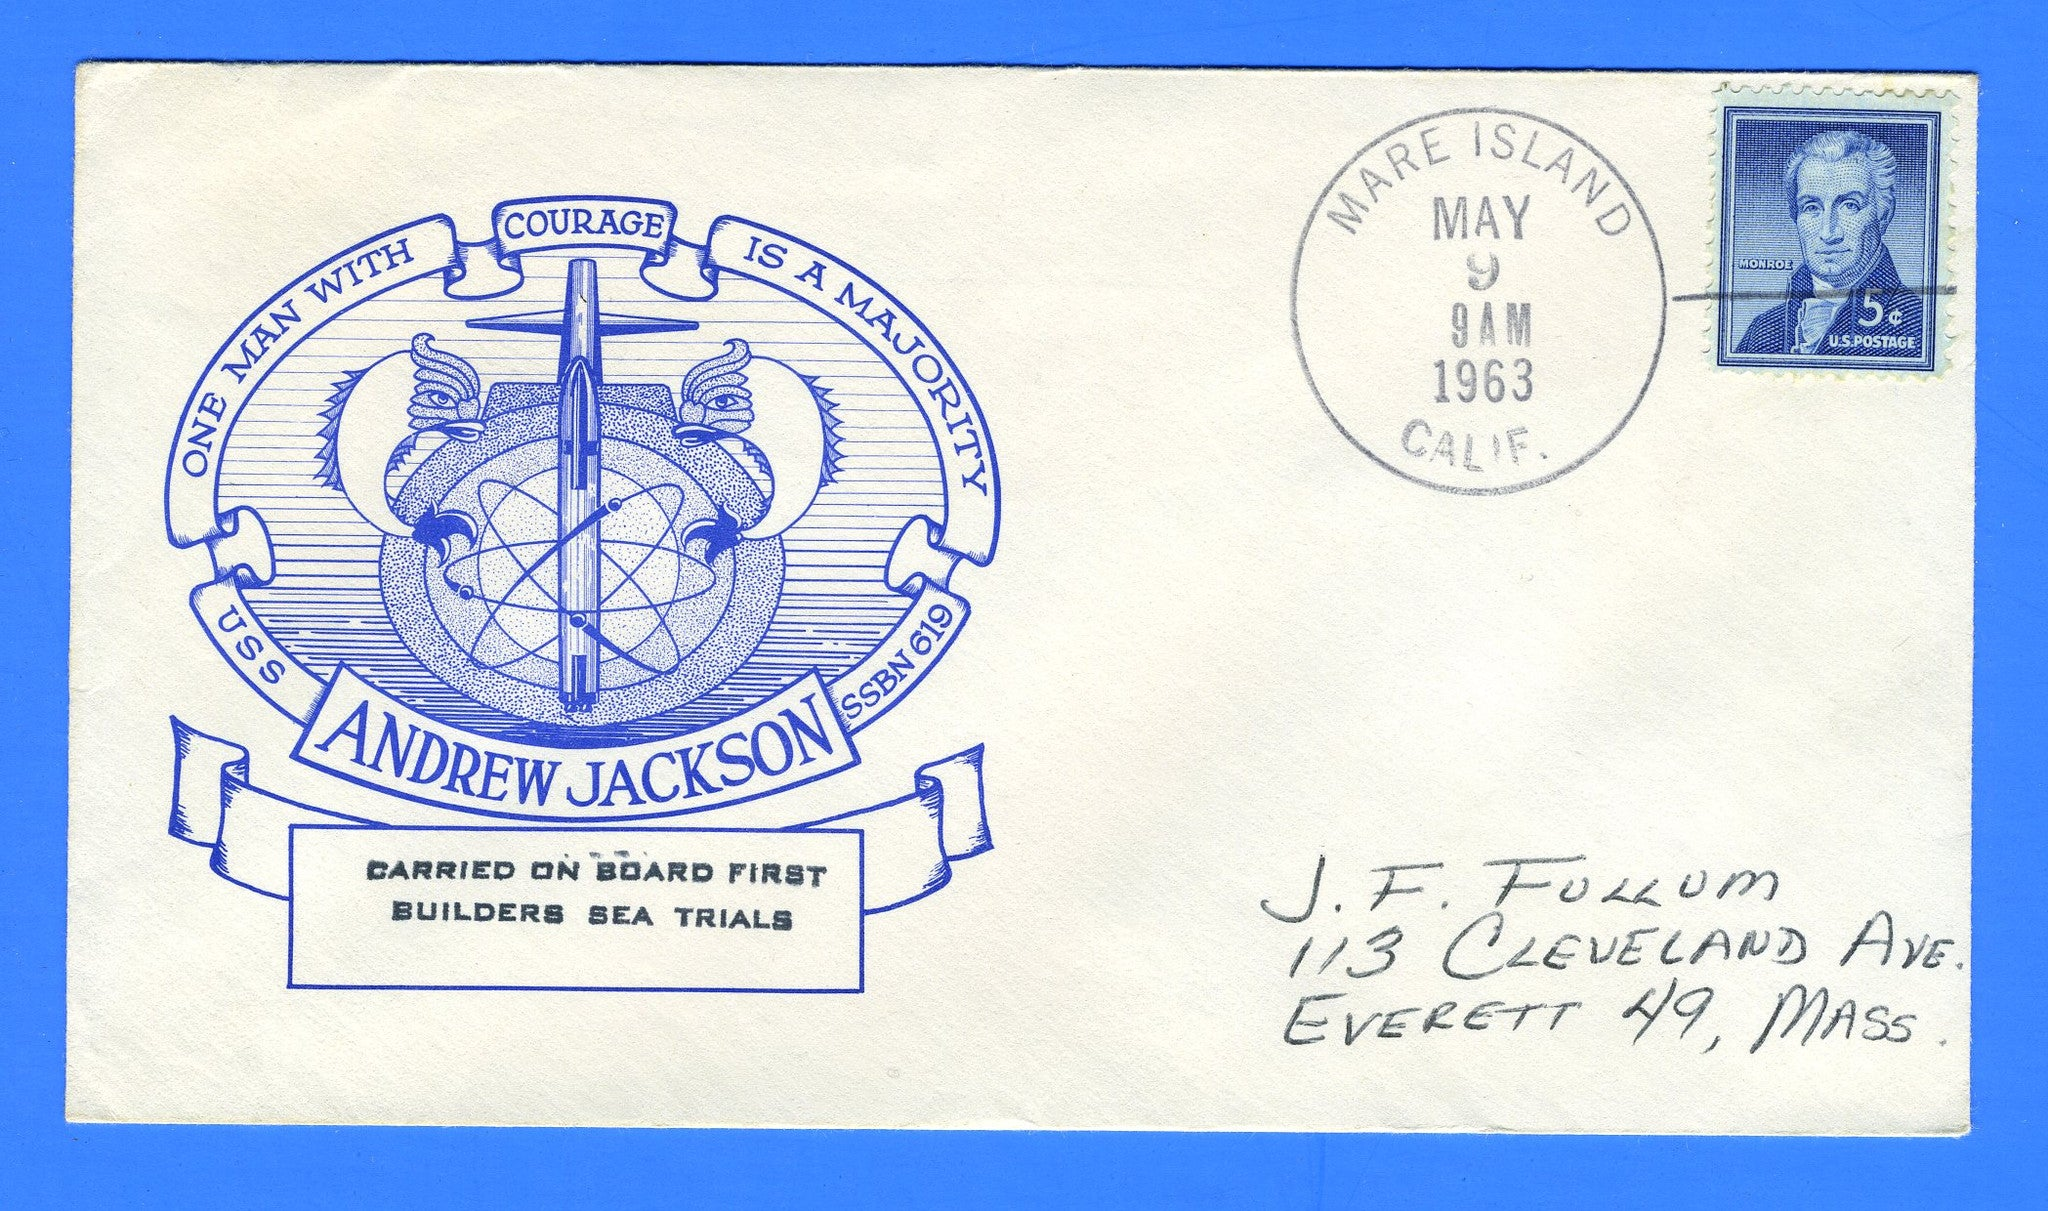 USS Andrew Jackson SSBN-619 First Builders Sea Trials May 9, 1963